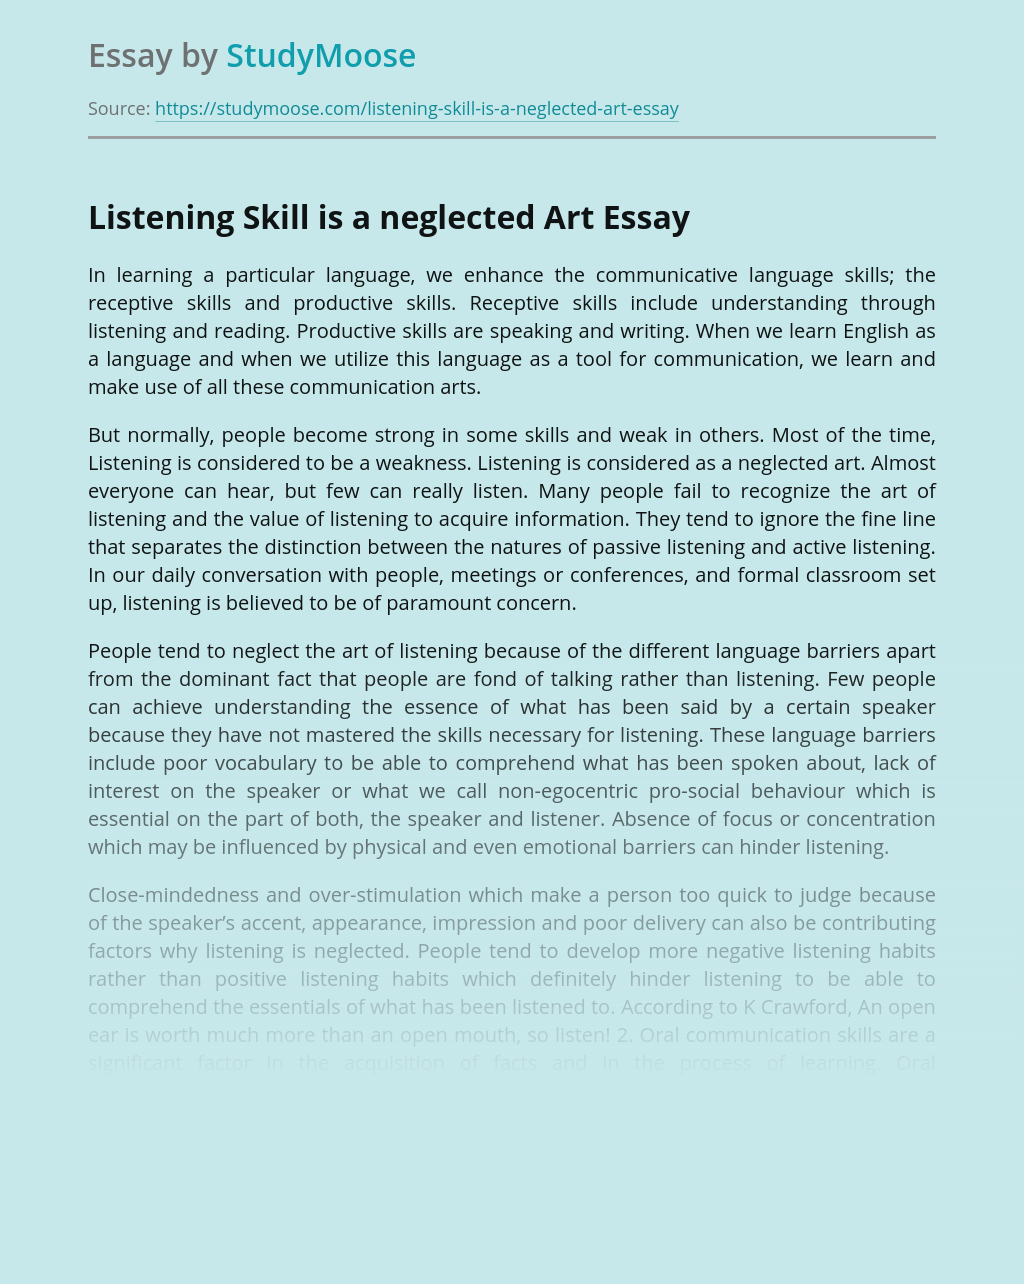 Listening Skill is a neglected Art